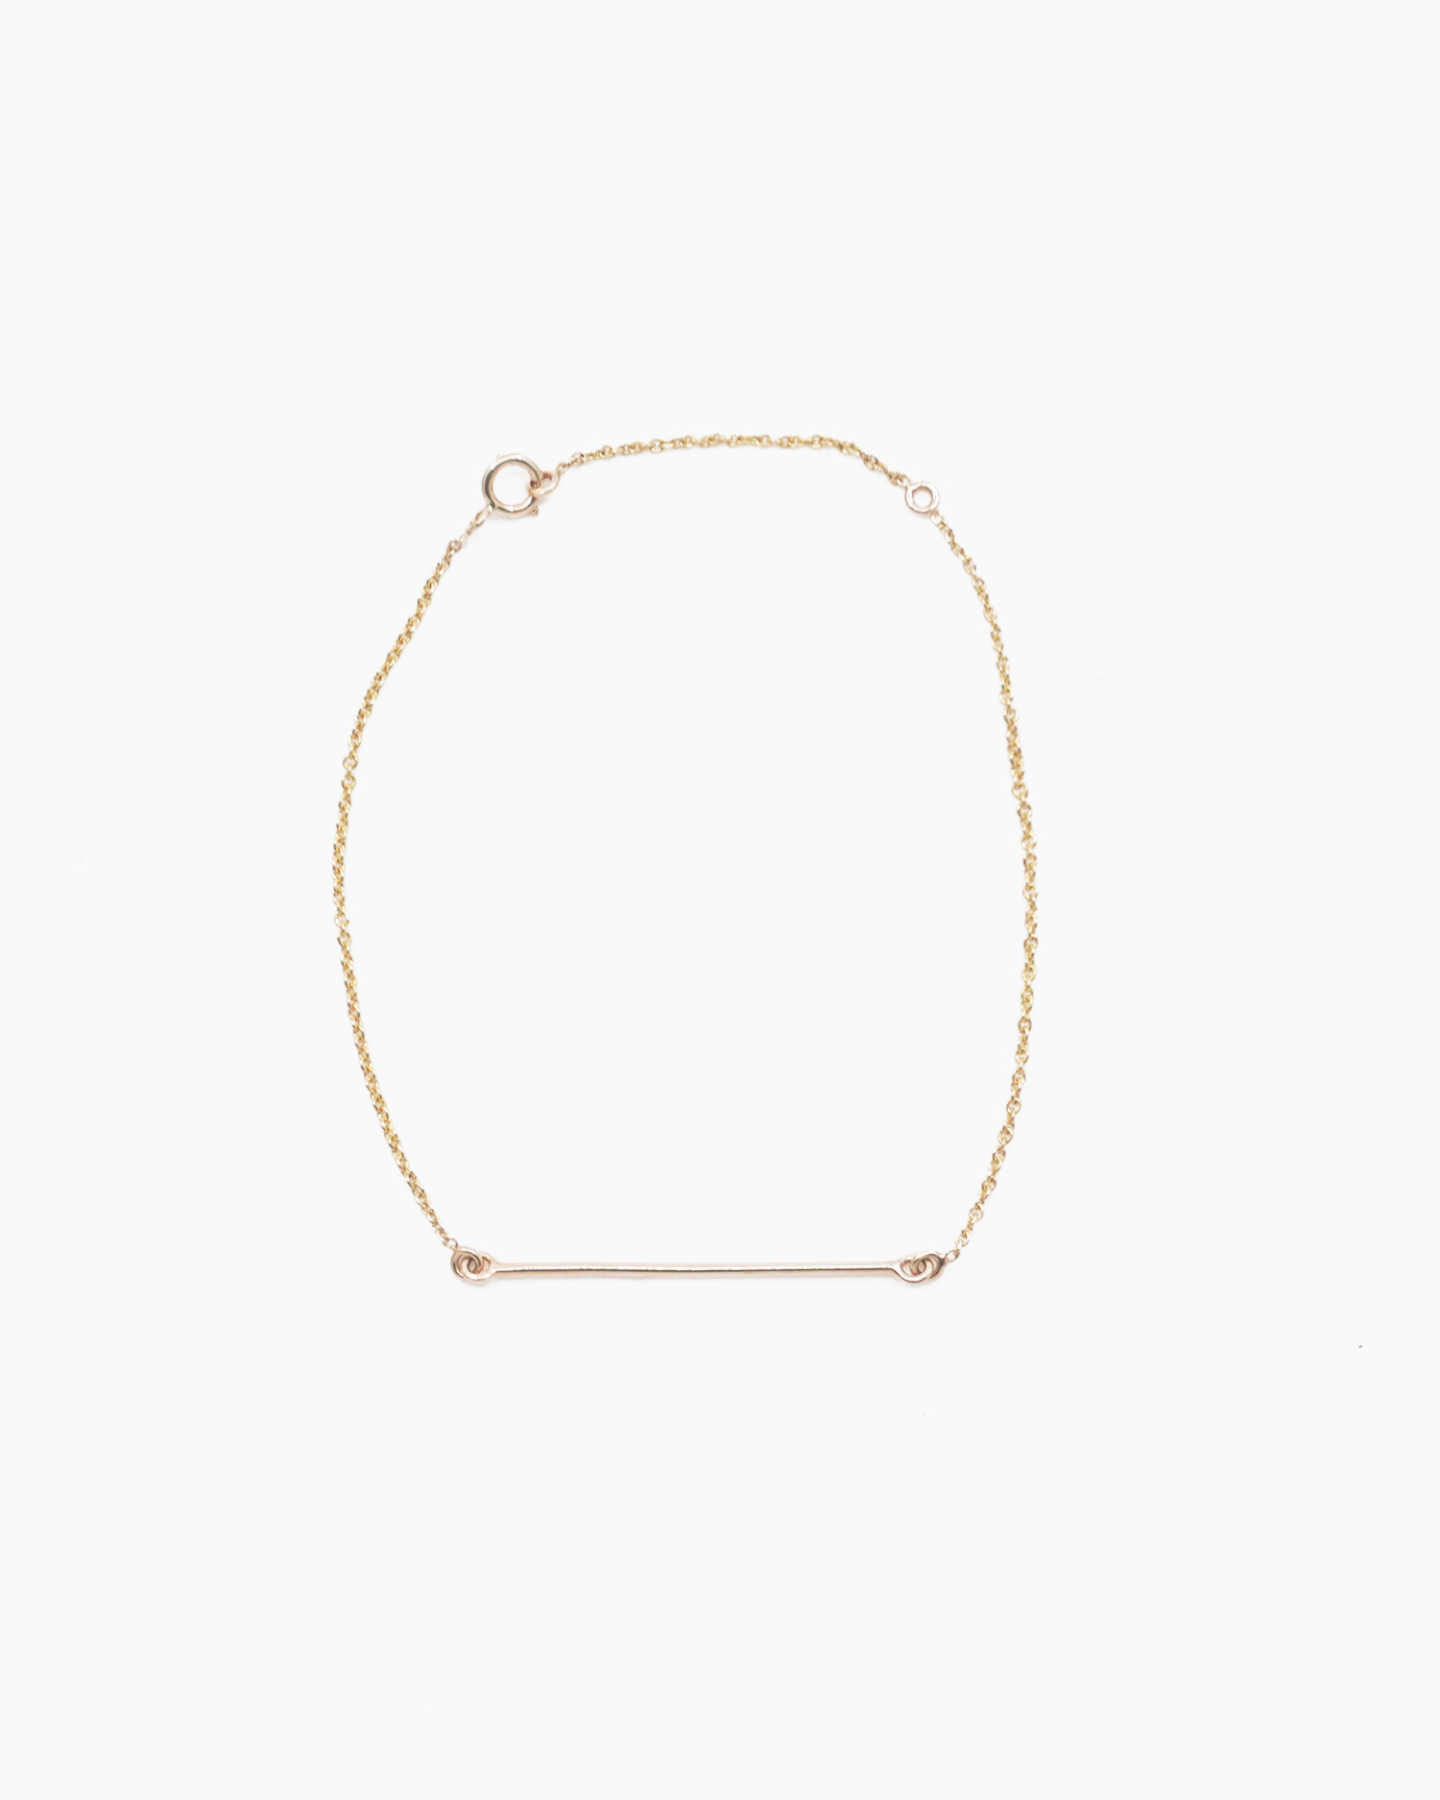 Pair With - Gold Lariat Bracelet - Yellow Gold